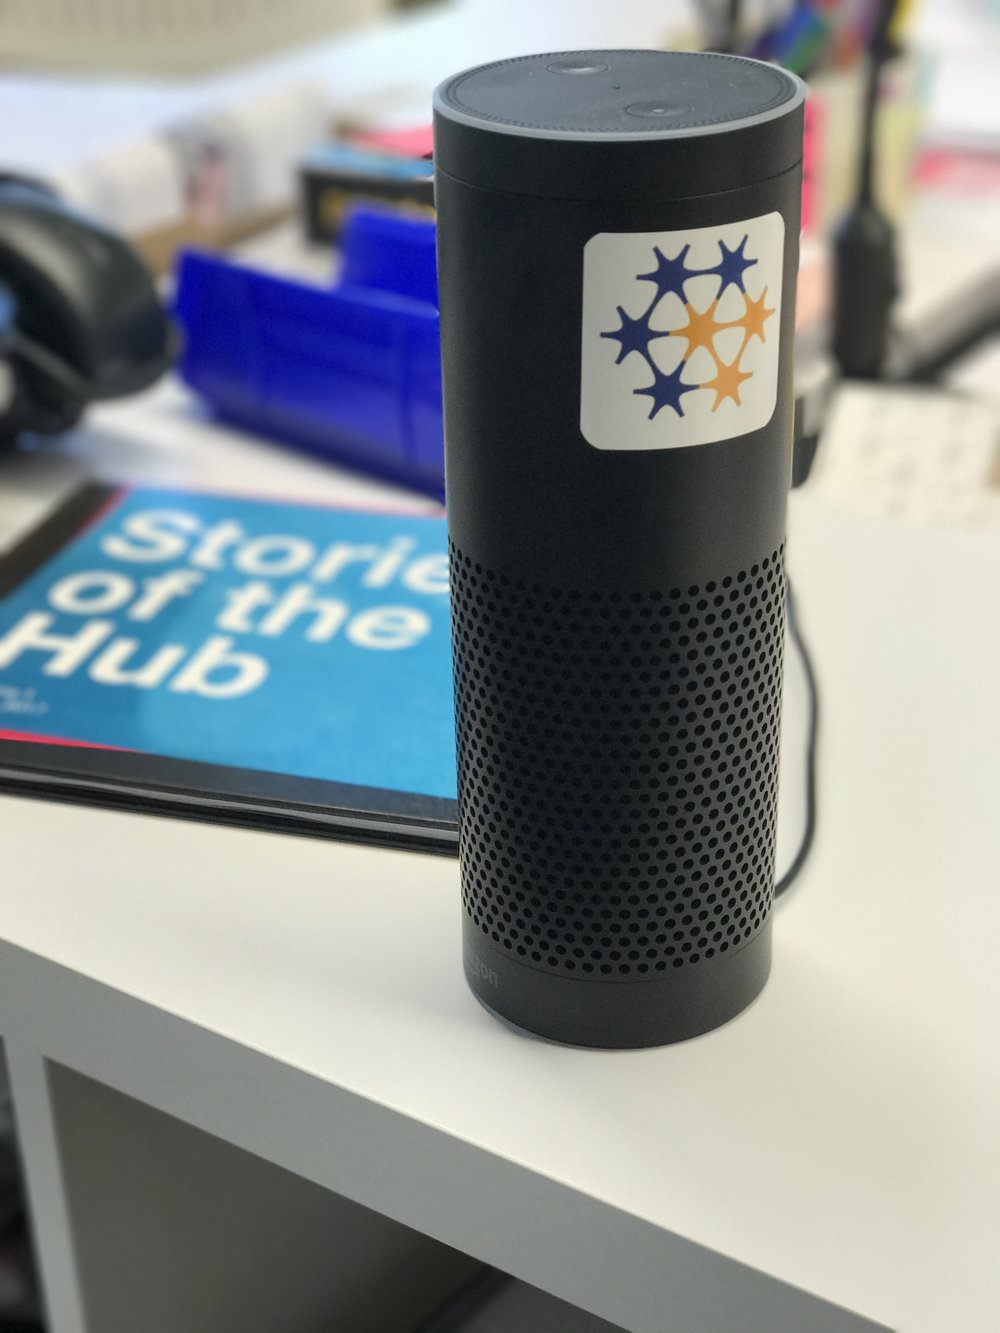 our digital pal - this Echo sits in our team's space and spits out jams all day long!